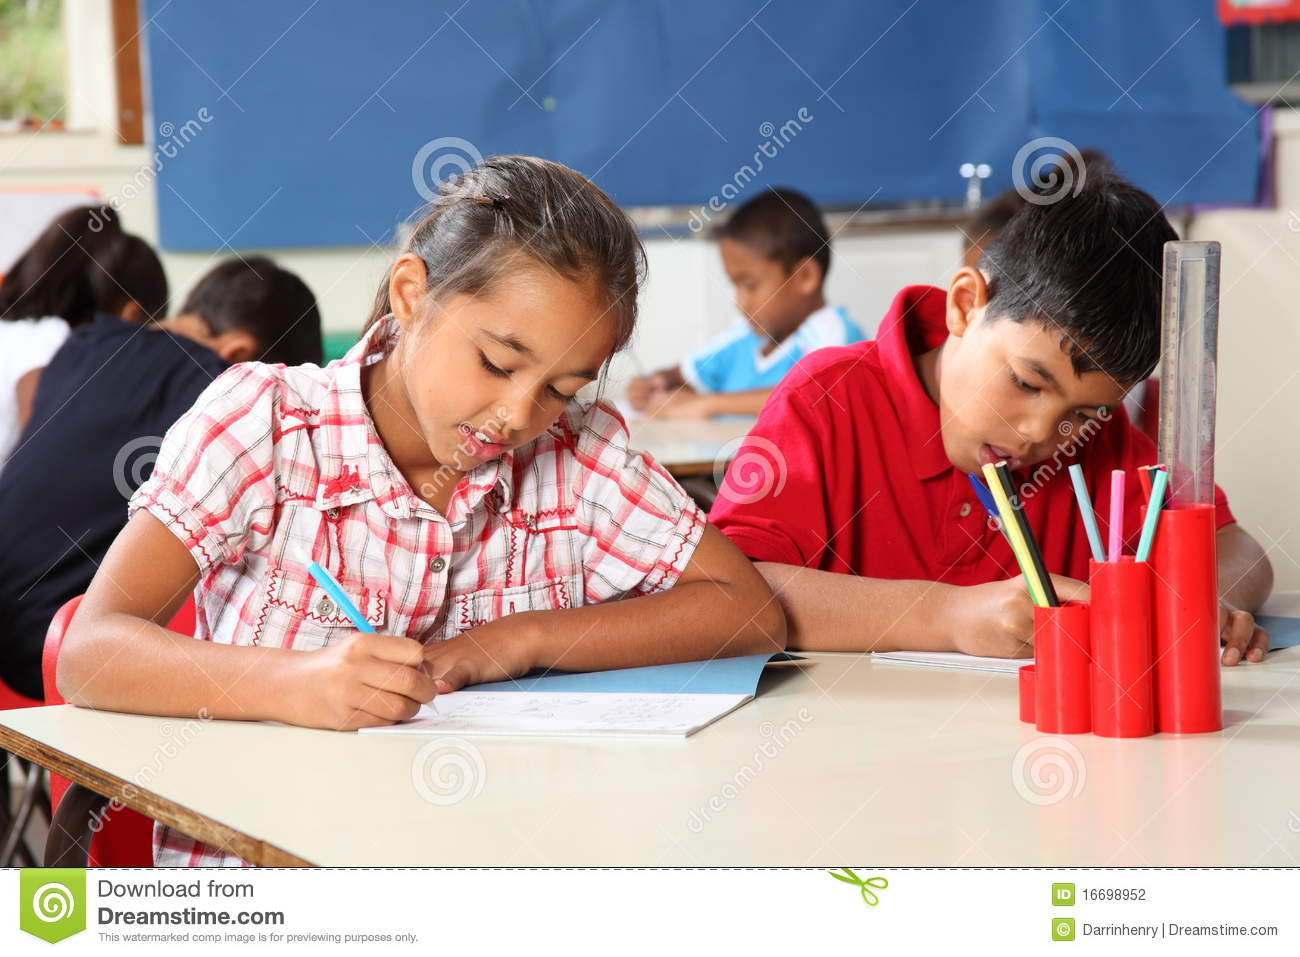 Confused Boy At Desk Cliparts furthermore The Truth About Standing Desk also Stock Photography Boy Girl Classroom Concentrating Lesson Image16698952 likewise Outdoor Office Design Plans also Fine Motor Foundations For Handwriting Success. on child sitting at desk